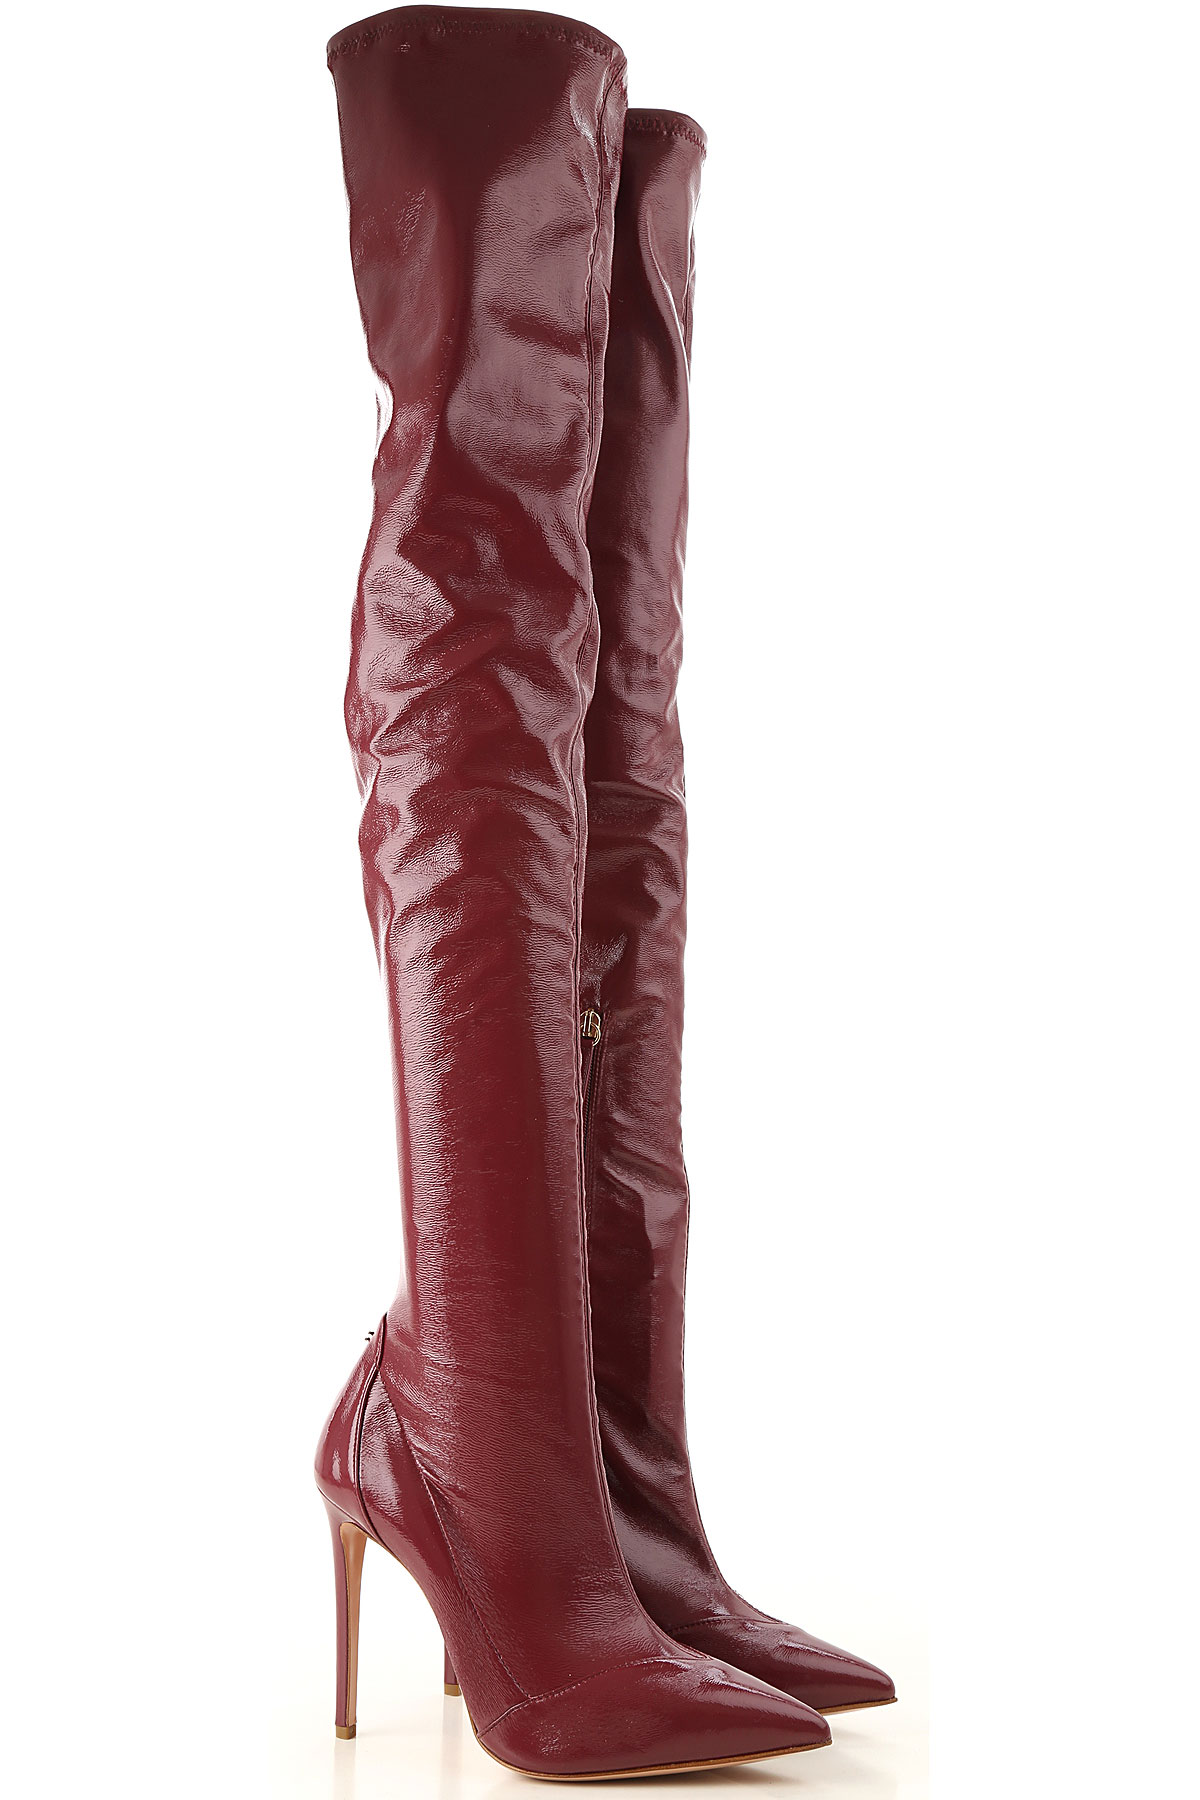 Image of Elisabetta Franchi Boots for Women, Booties, Red Wine, Patent, 2017, 10 6 7 8 9